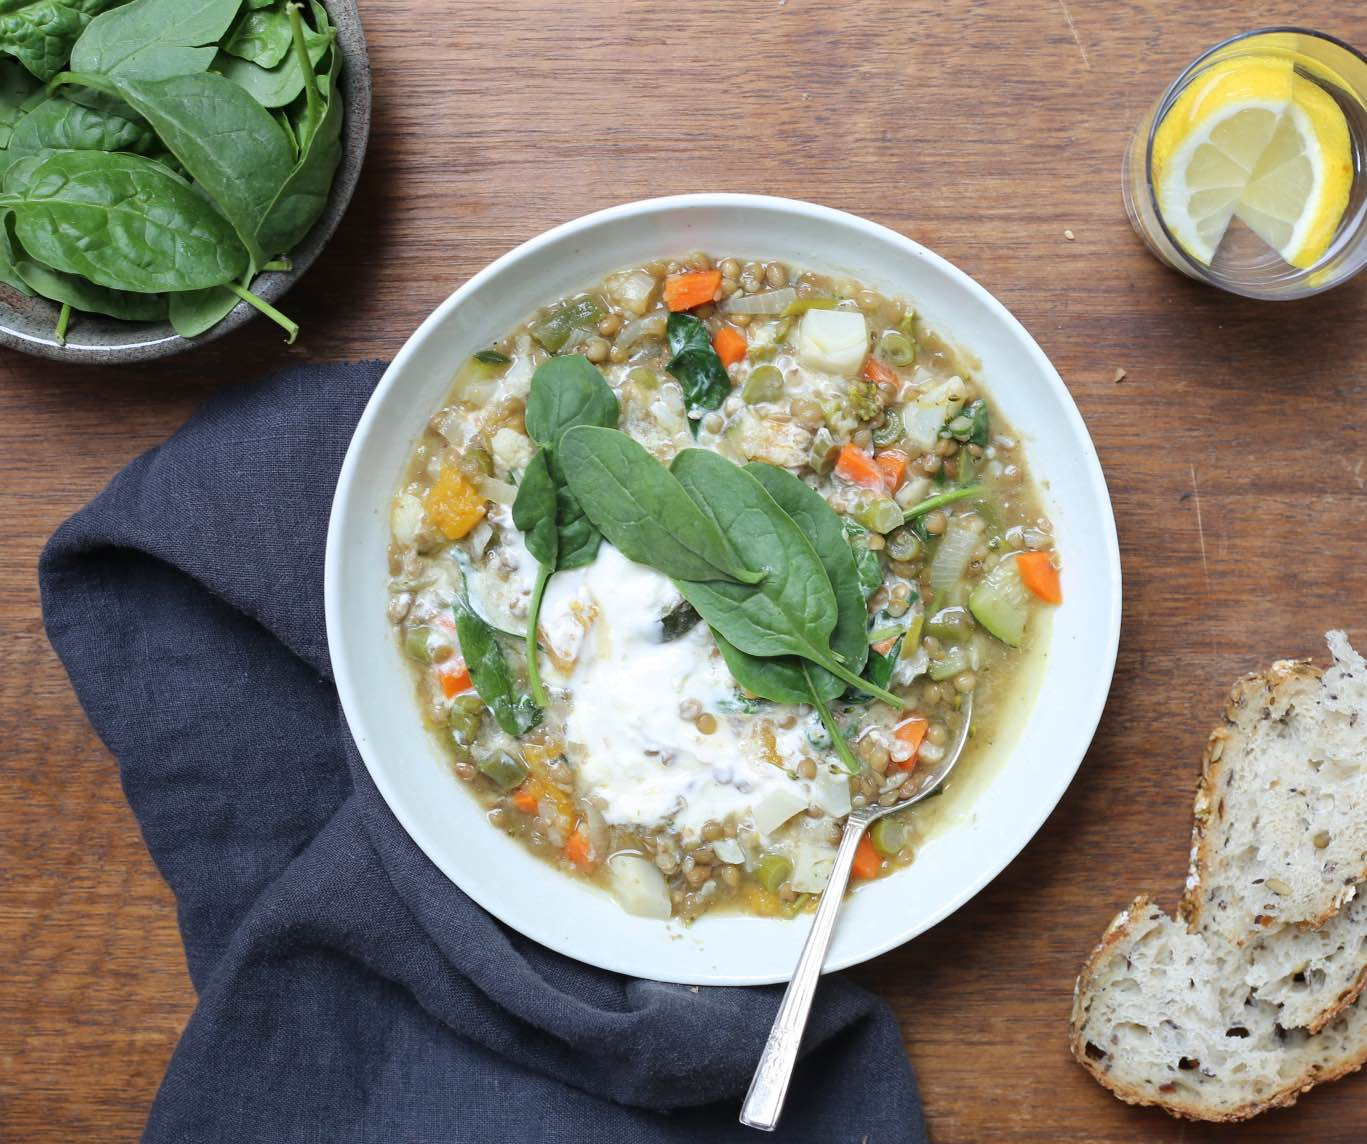 Lentils with vegetables and yoghurt